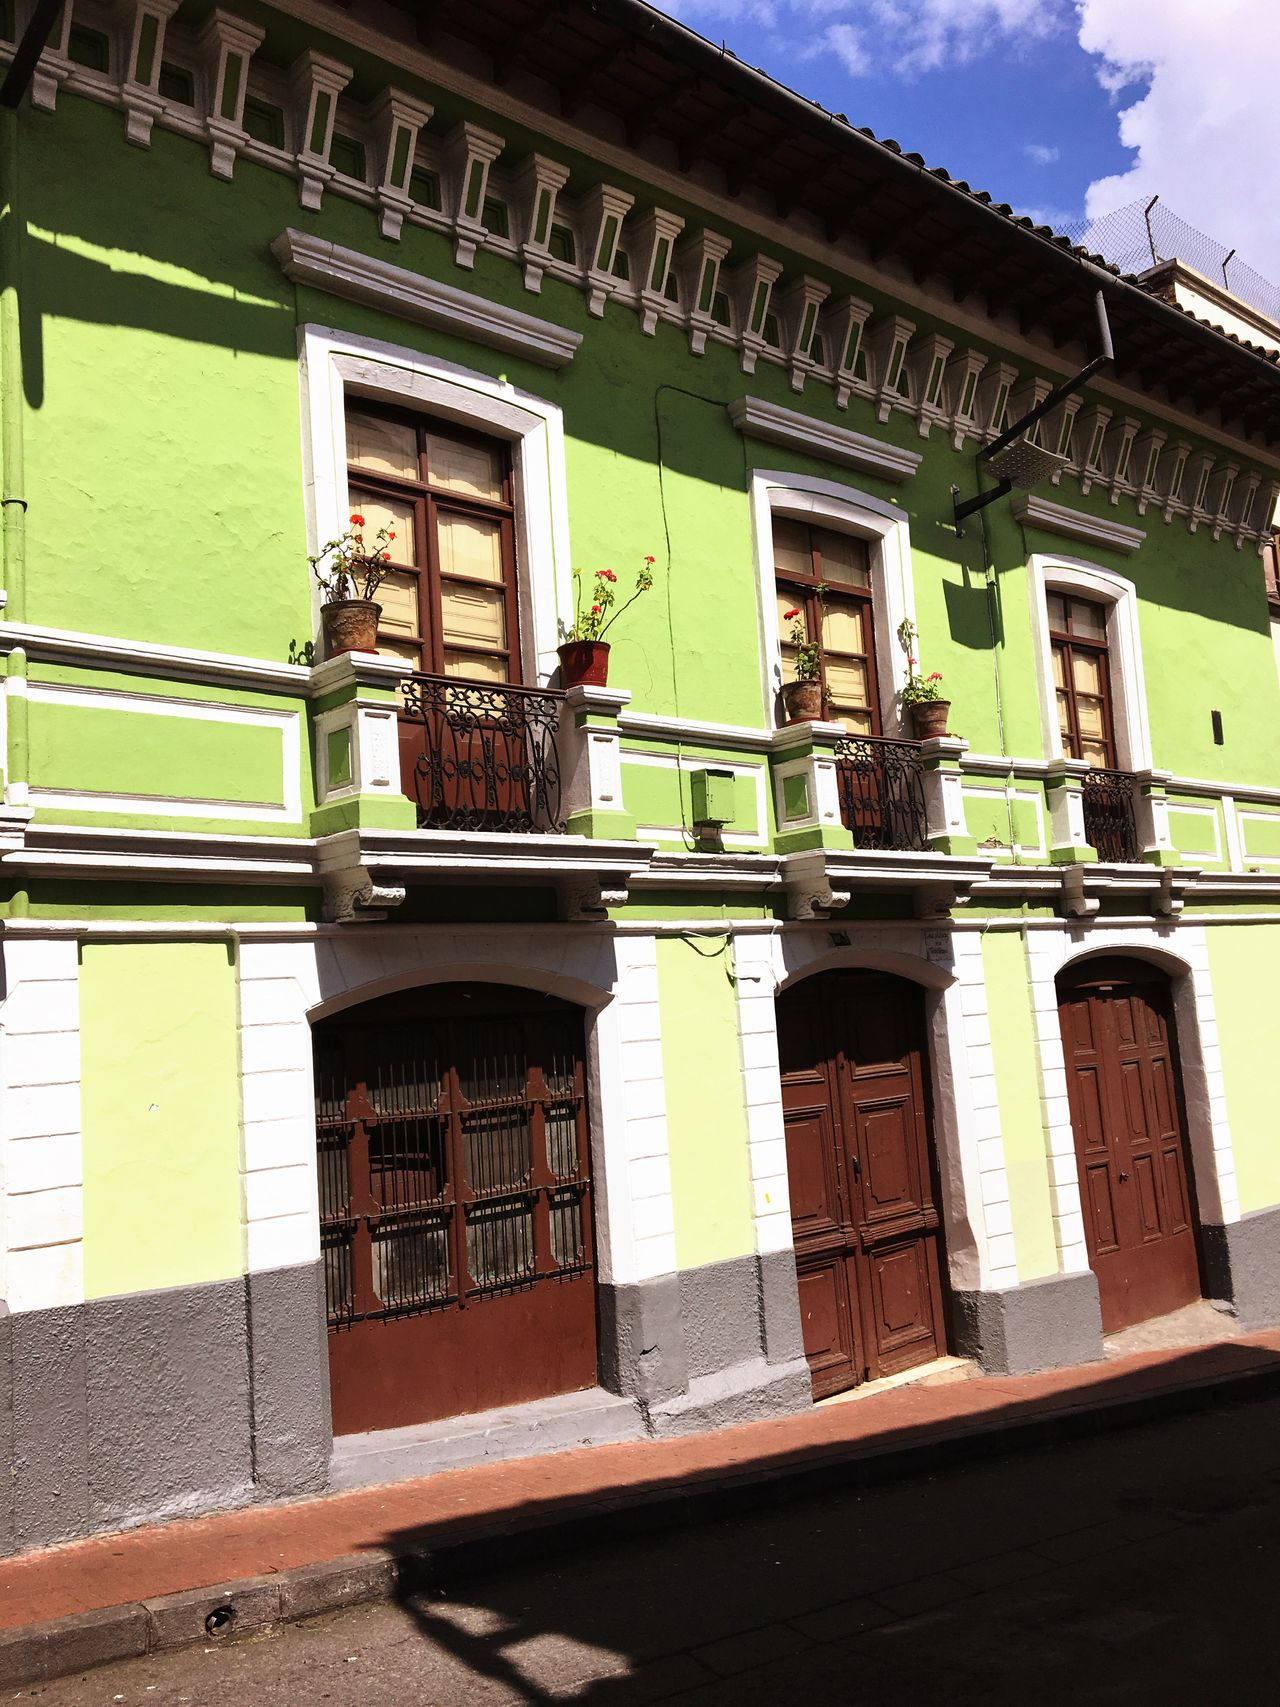 Green buildings Roses Angle Slant Building Exterior Architecture Built Structure Window Let's Go. Together. Built_Structure Quito South America Equador EyeEmNewHere City Town Outdoors Day EyeEmNewHere Let's Go. Together.